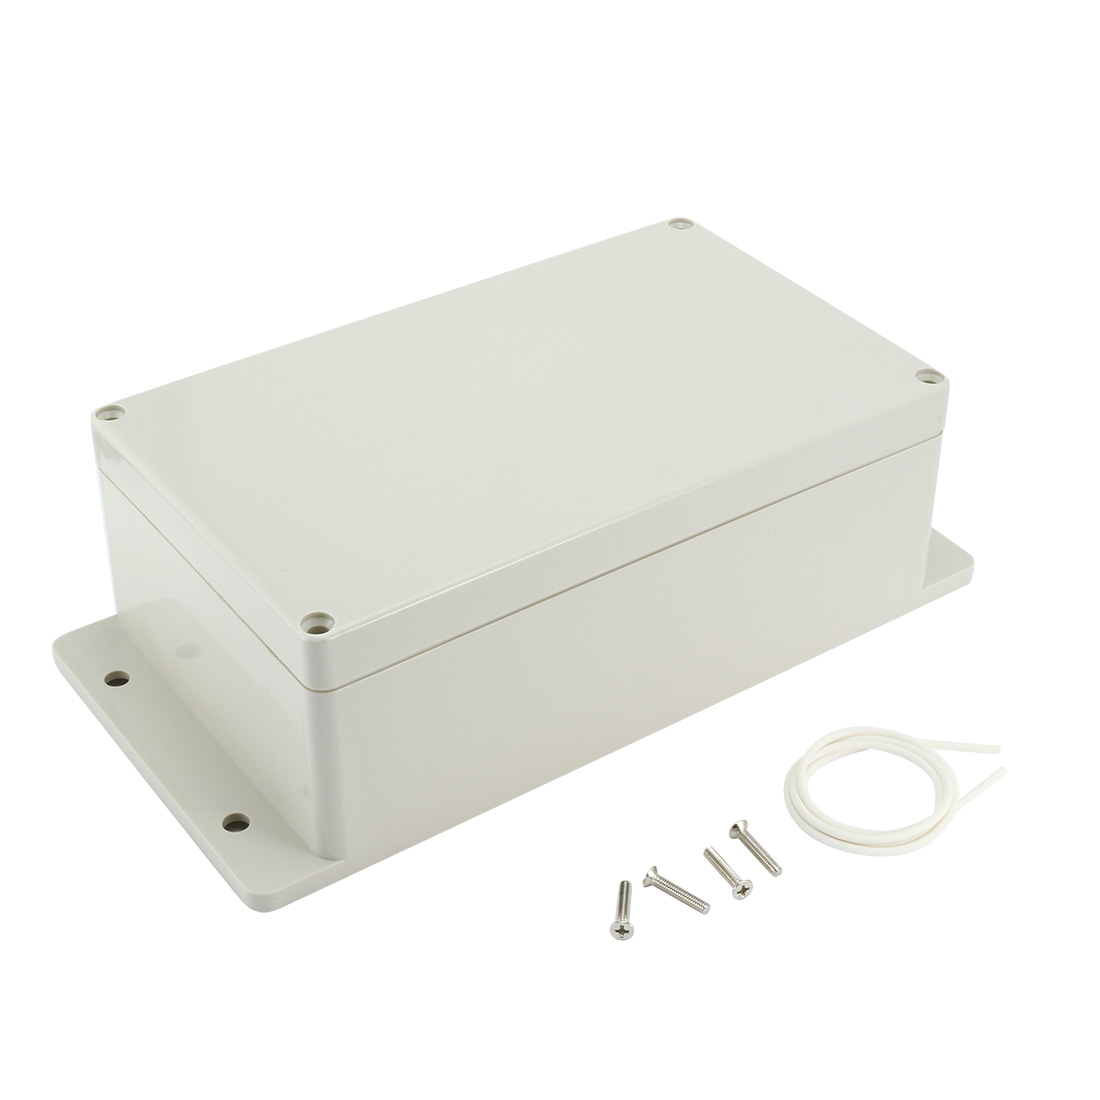 "7.9""x4.7""x2.95""(200mmx120mmx75mm) ABS Junction Box Universal Electric Project Enclosure"